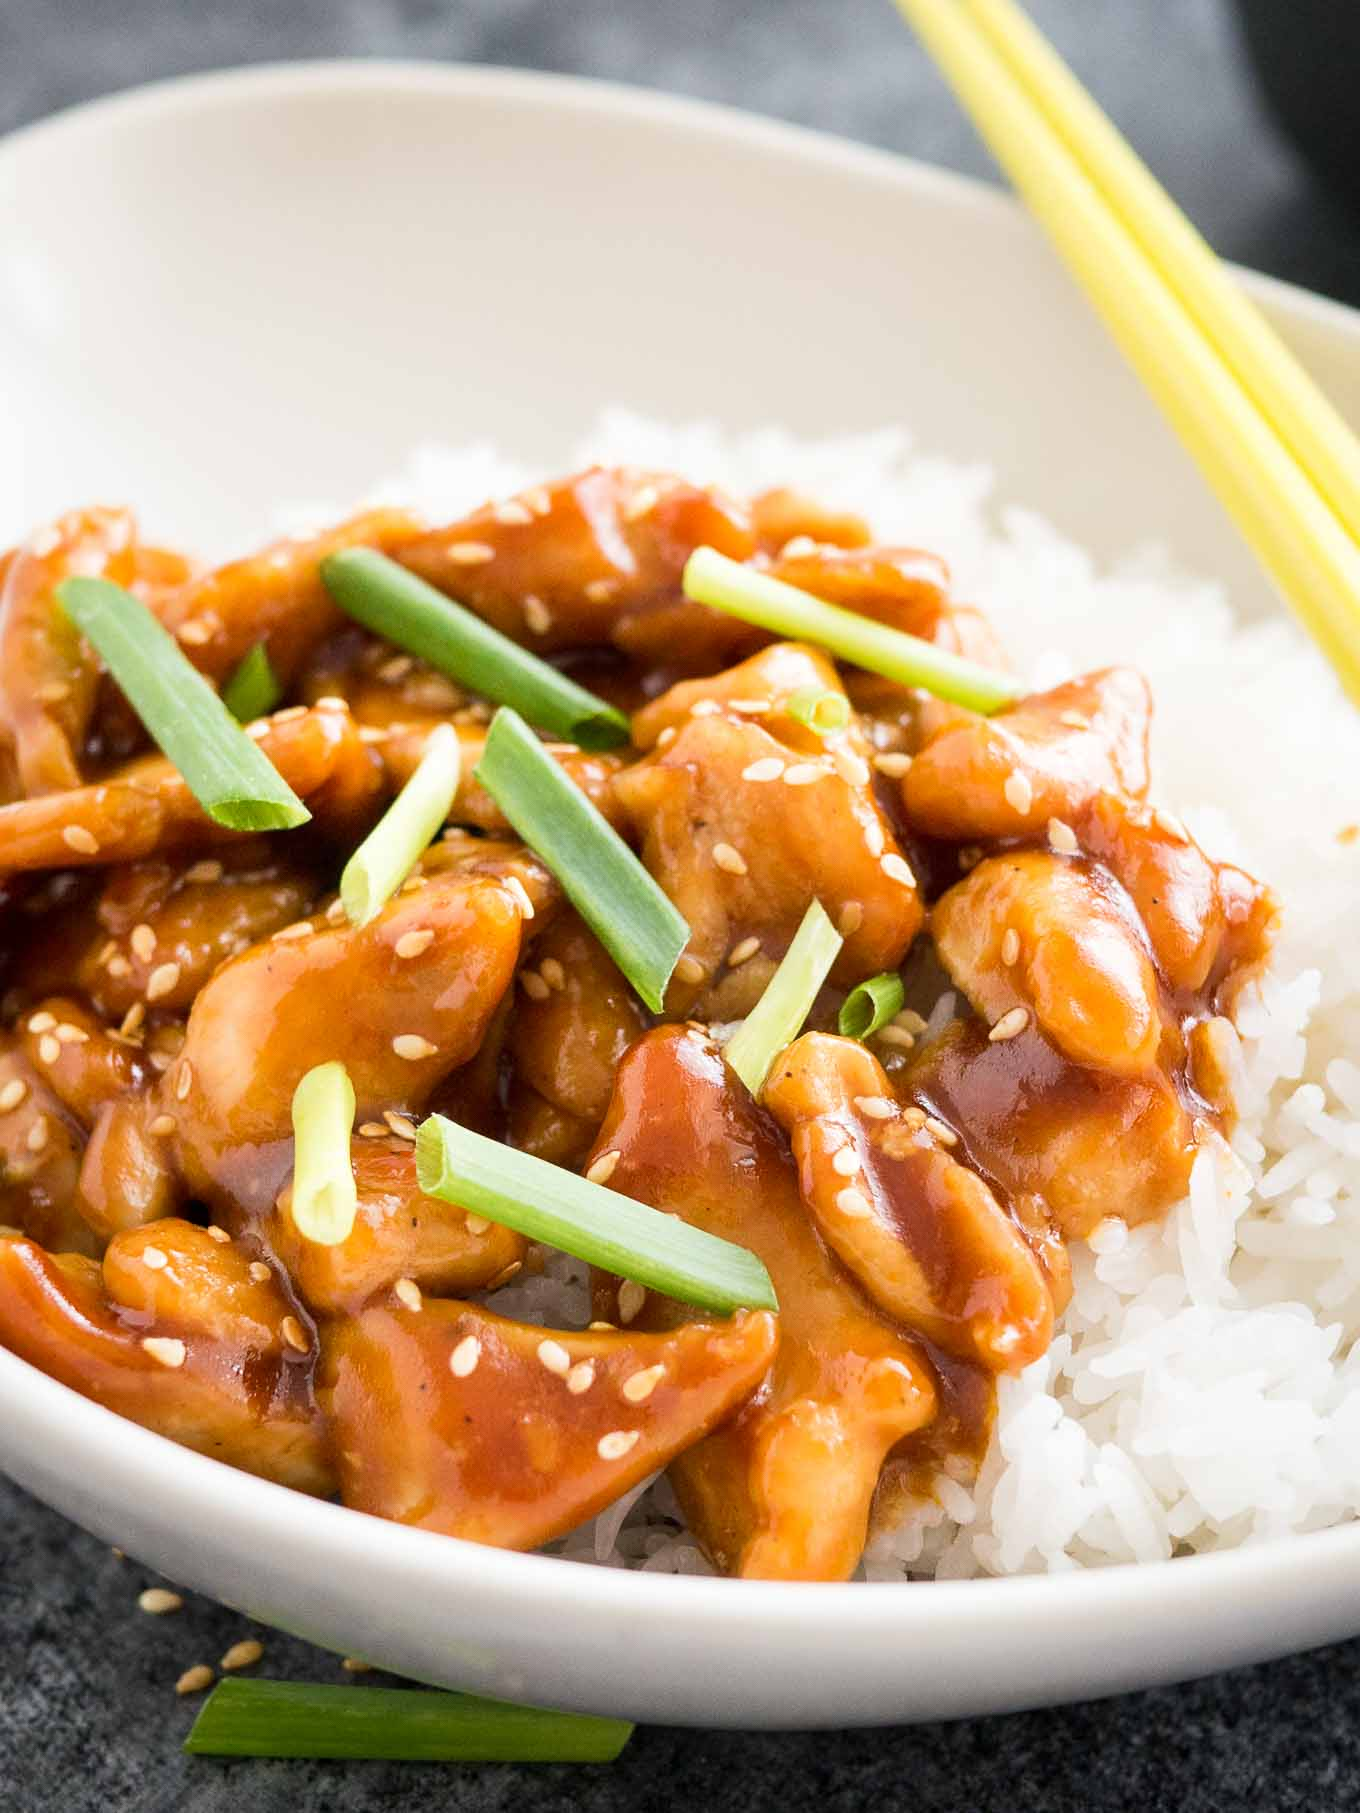 Easy Healthy General Tso's Chicken Recipe